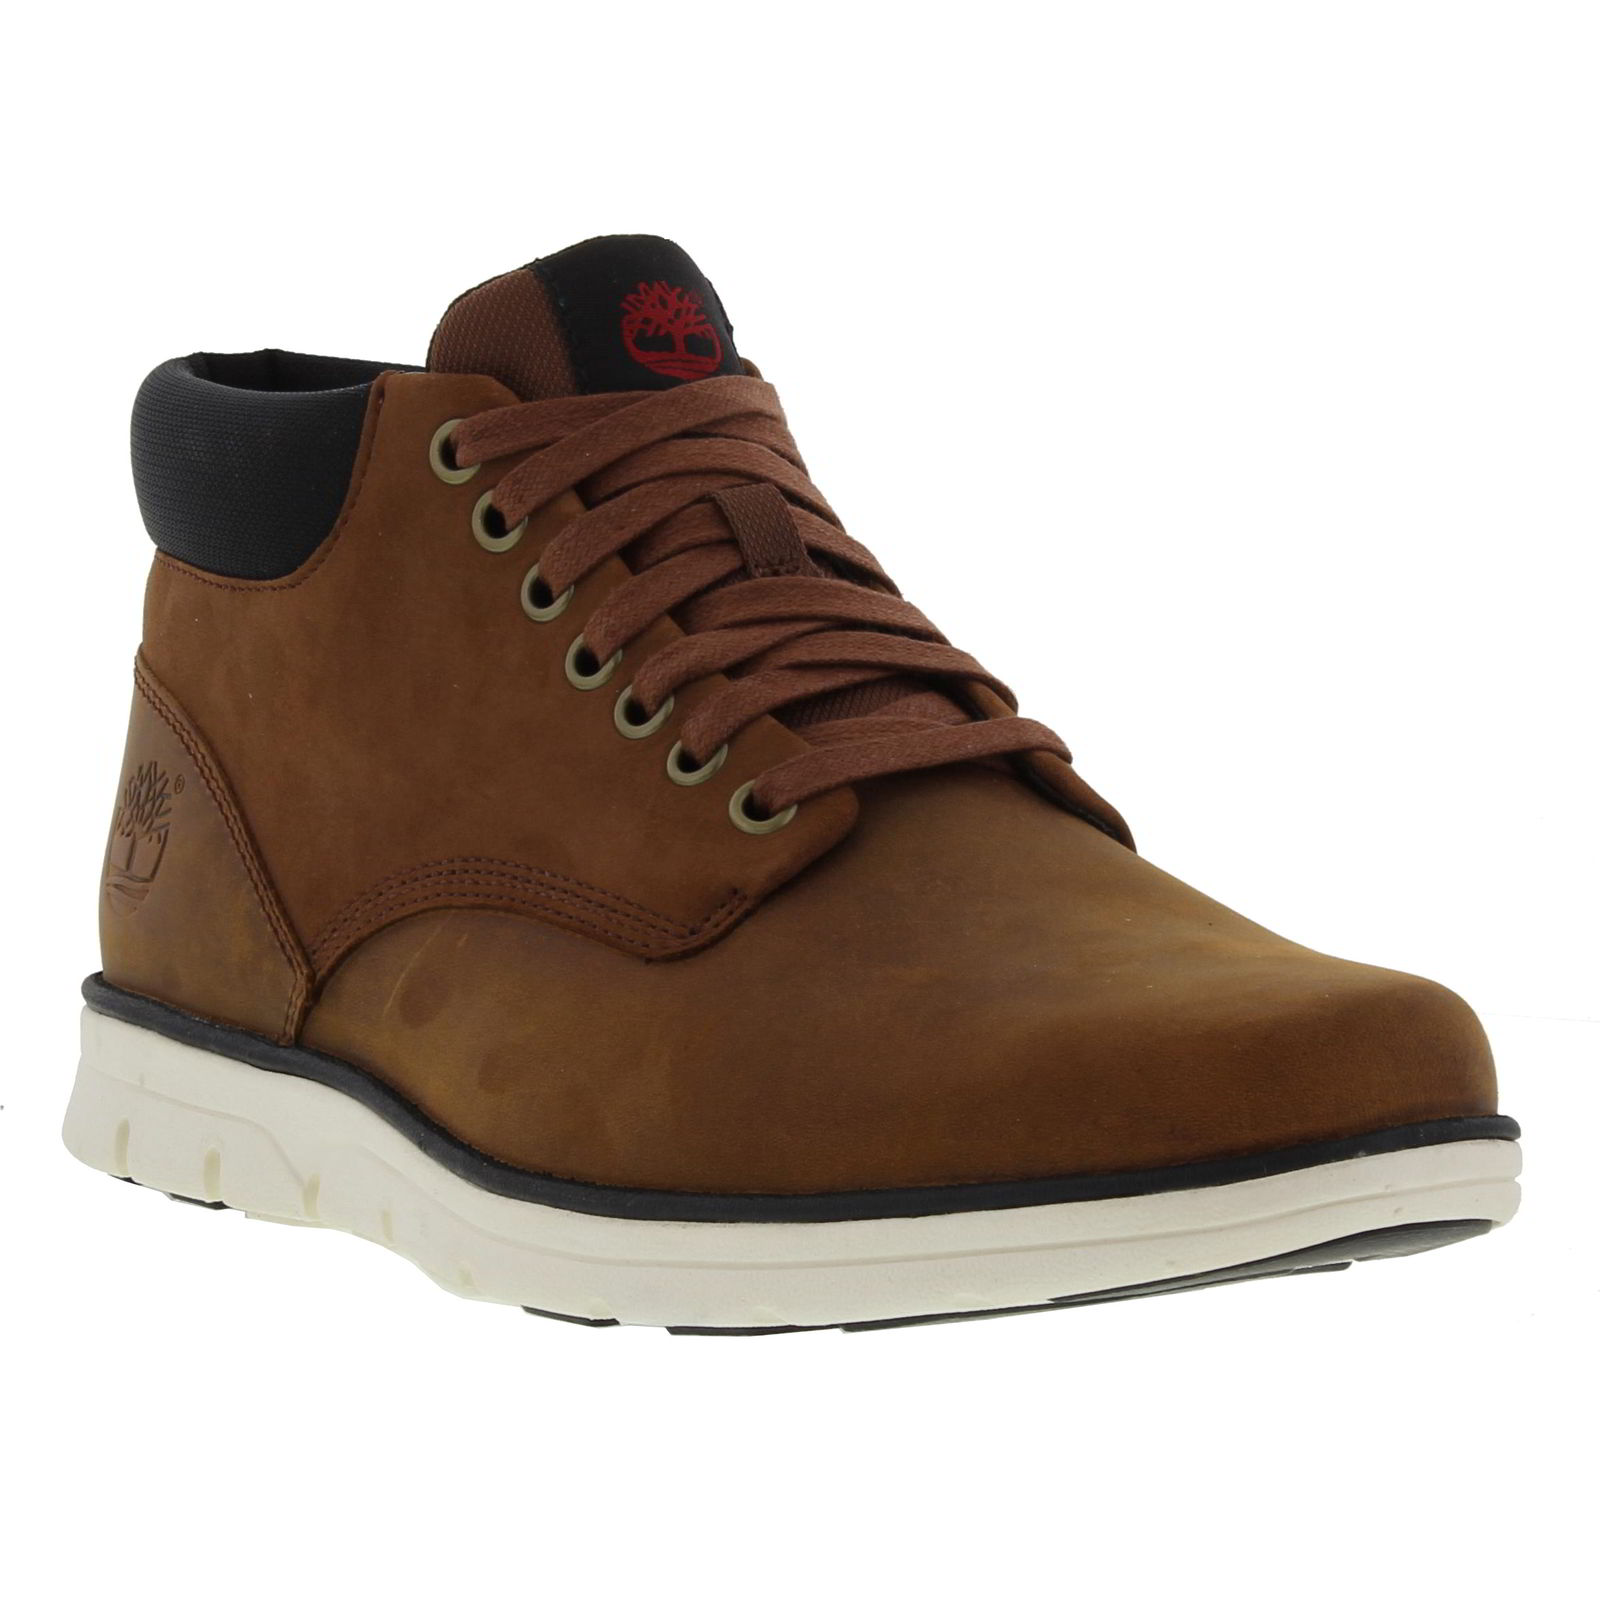 timberland bradstreet chukka boots mens leather ankle. Black Bedroom Furniture Sets. Home Design Ideas